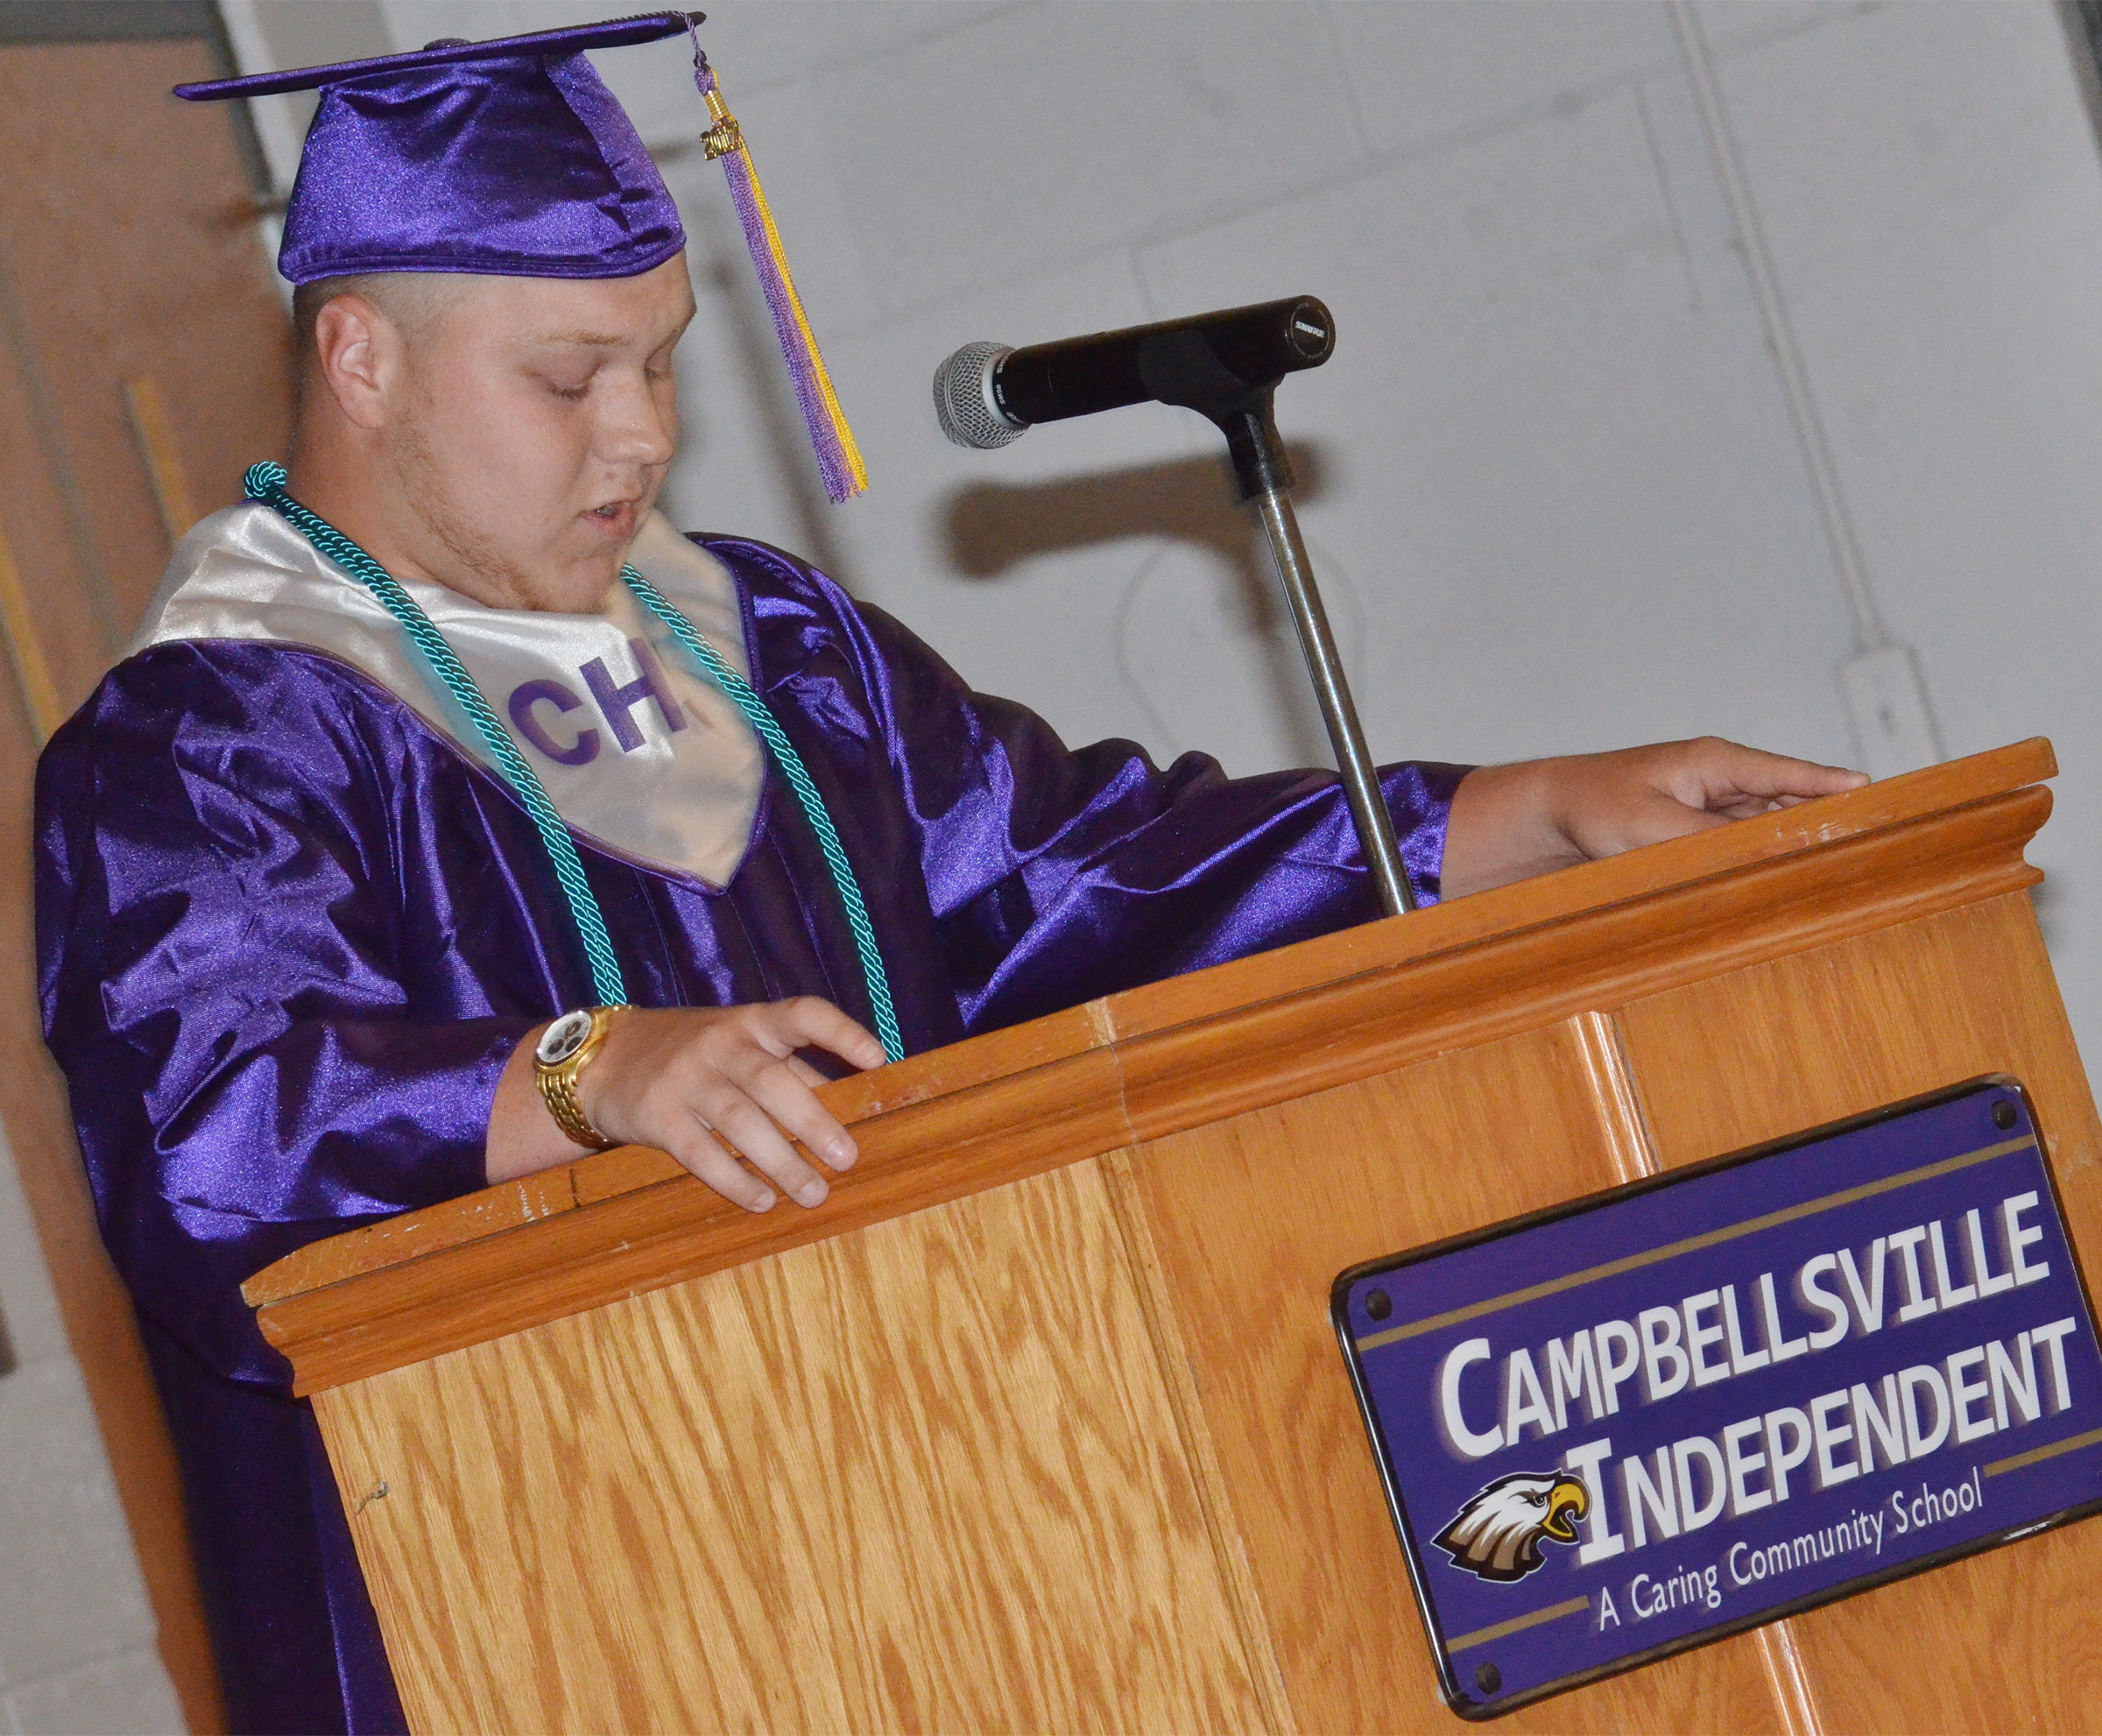 CHS senior Noah Wagers introduces his dad, Steve, to speak at the baccalaureate ceremony.